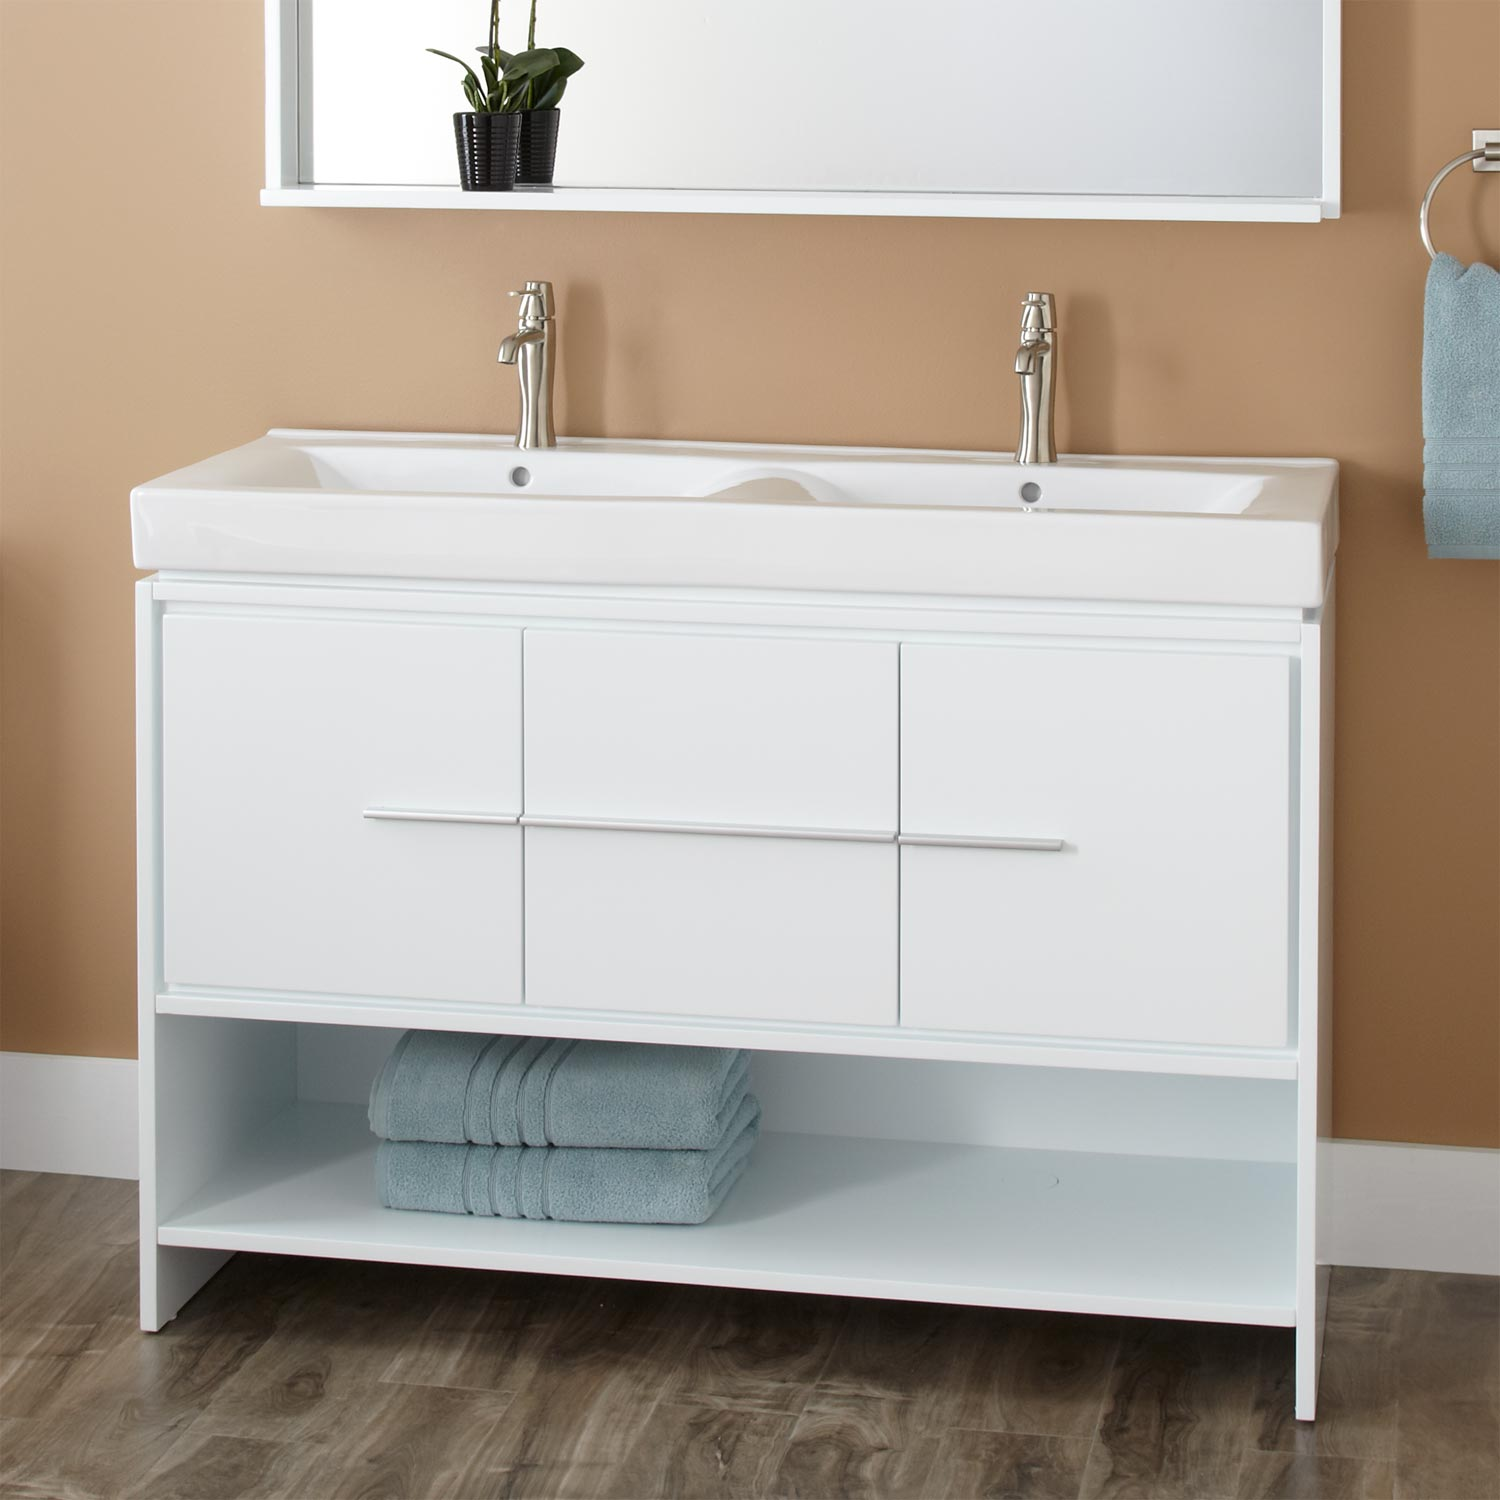 Bathroom sink with cabinet homesfeed for Toilet sink cabinet